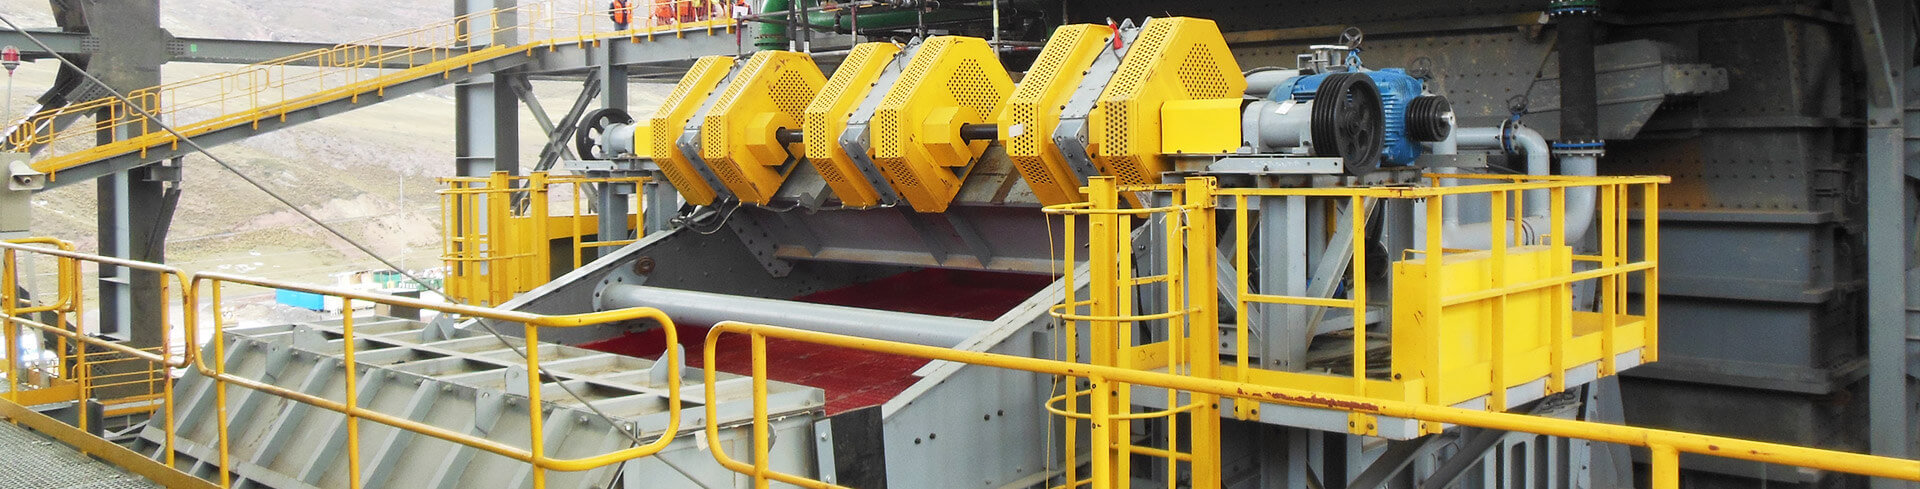 Vibrating Screen, Linear Screen